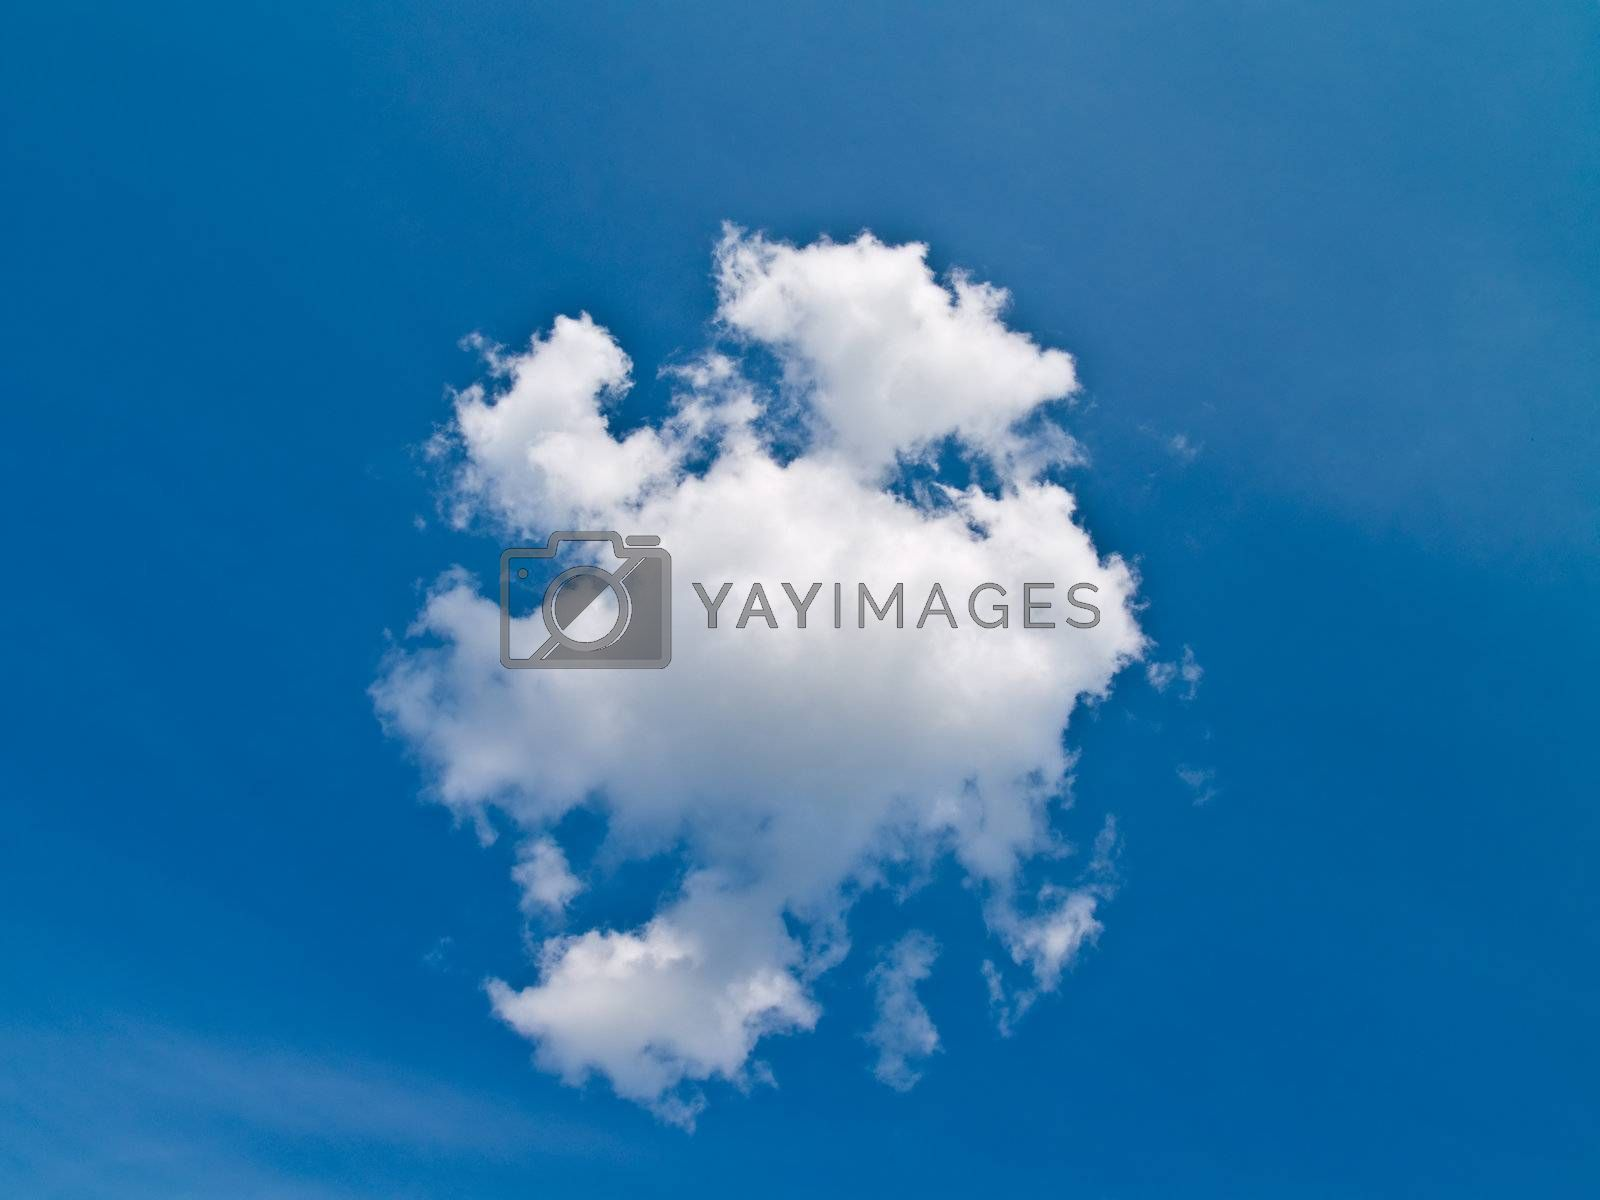 The blue sky and beautiful white cloud